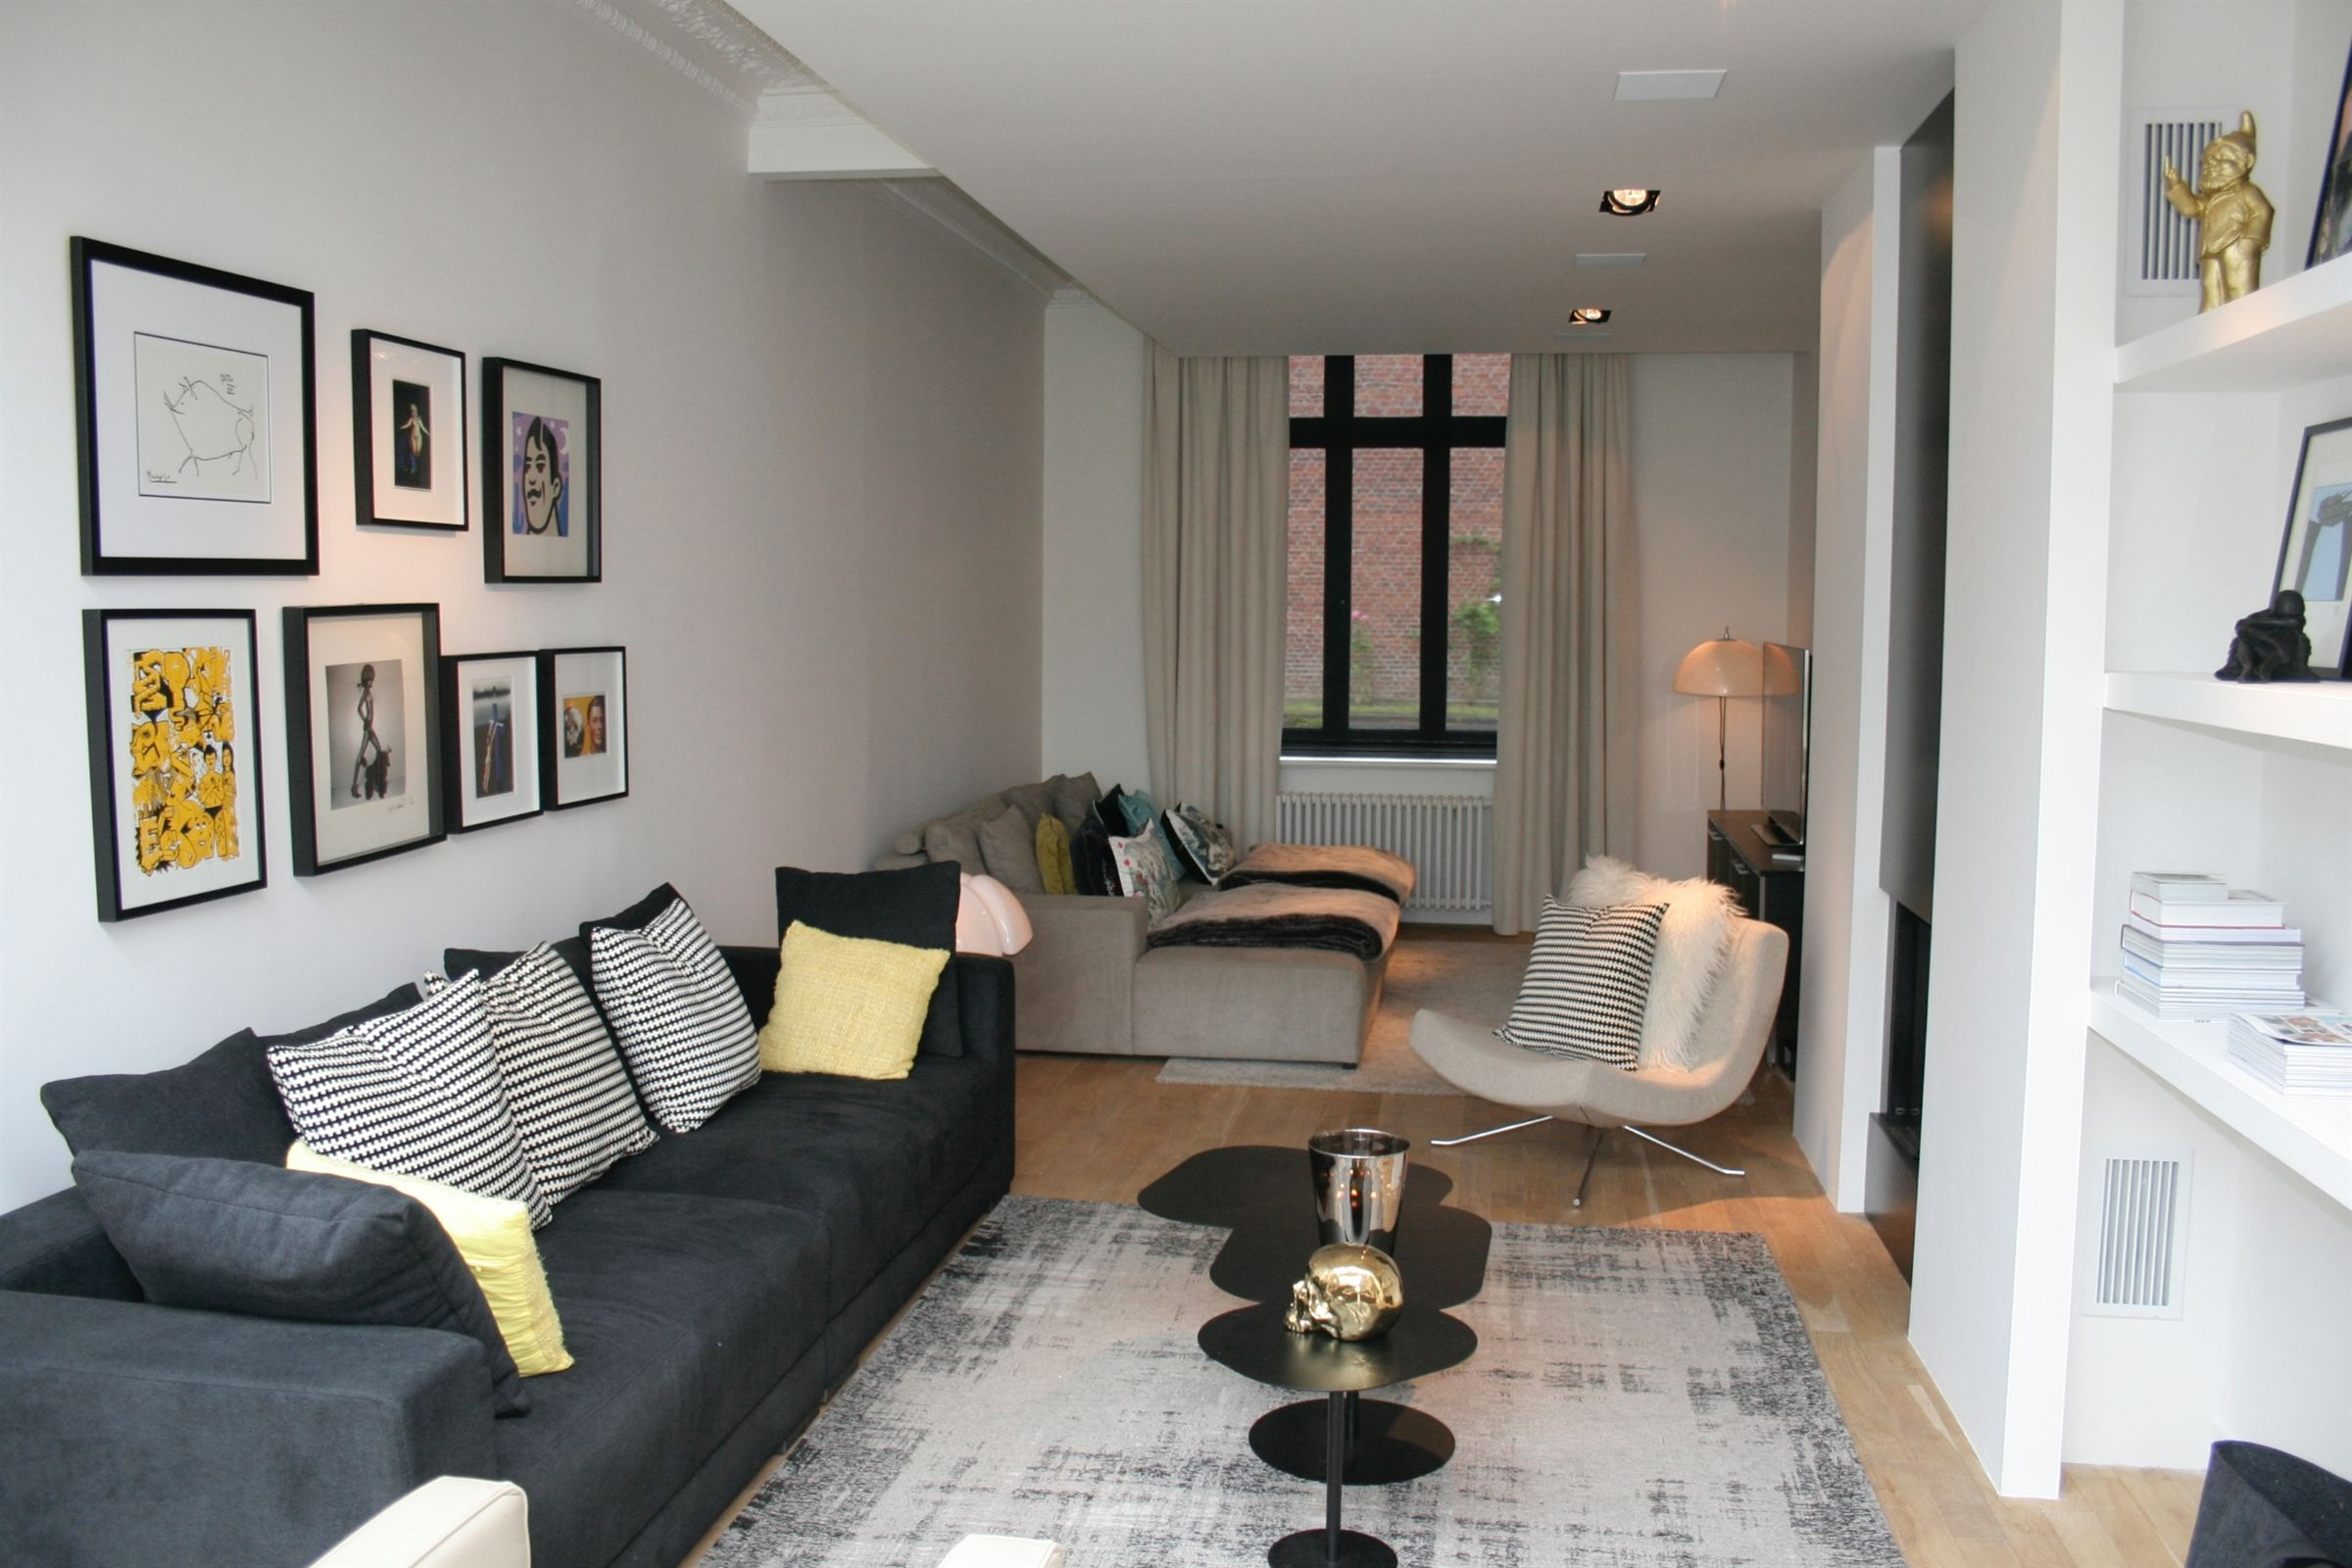 Property For Sale at MOUVAUX Center, 1930 Town house renovated 280m2 hab.